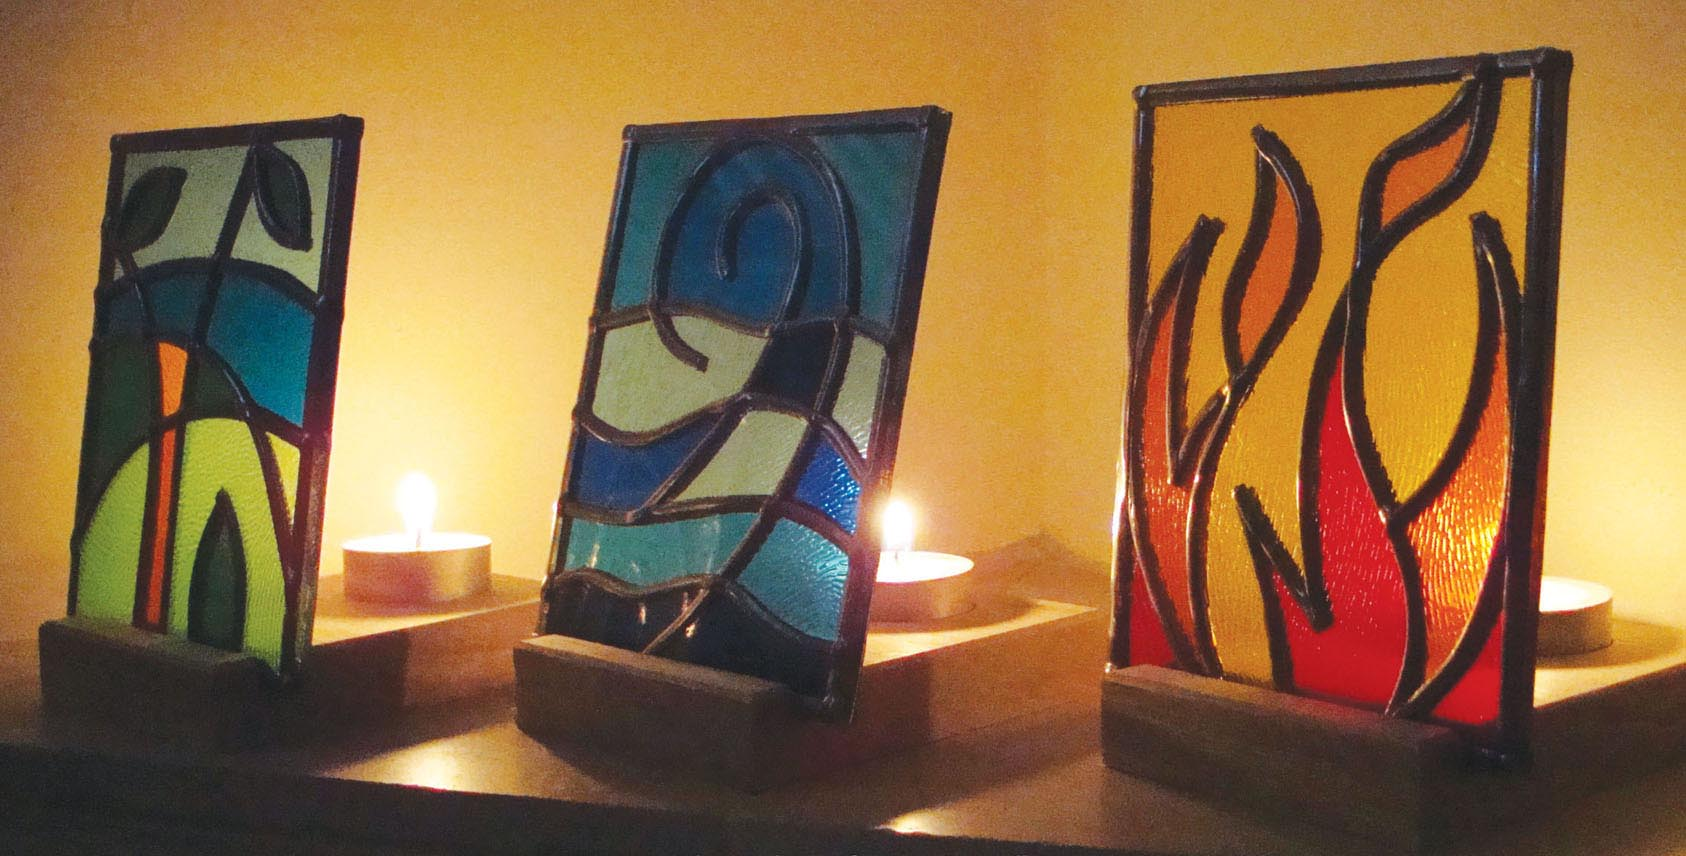 Earth, Wind & Fire stained glass t-lights